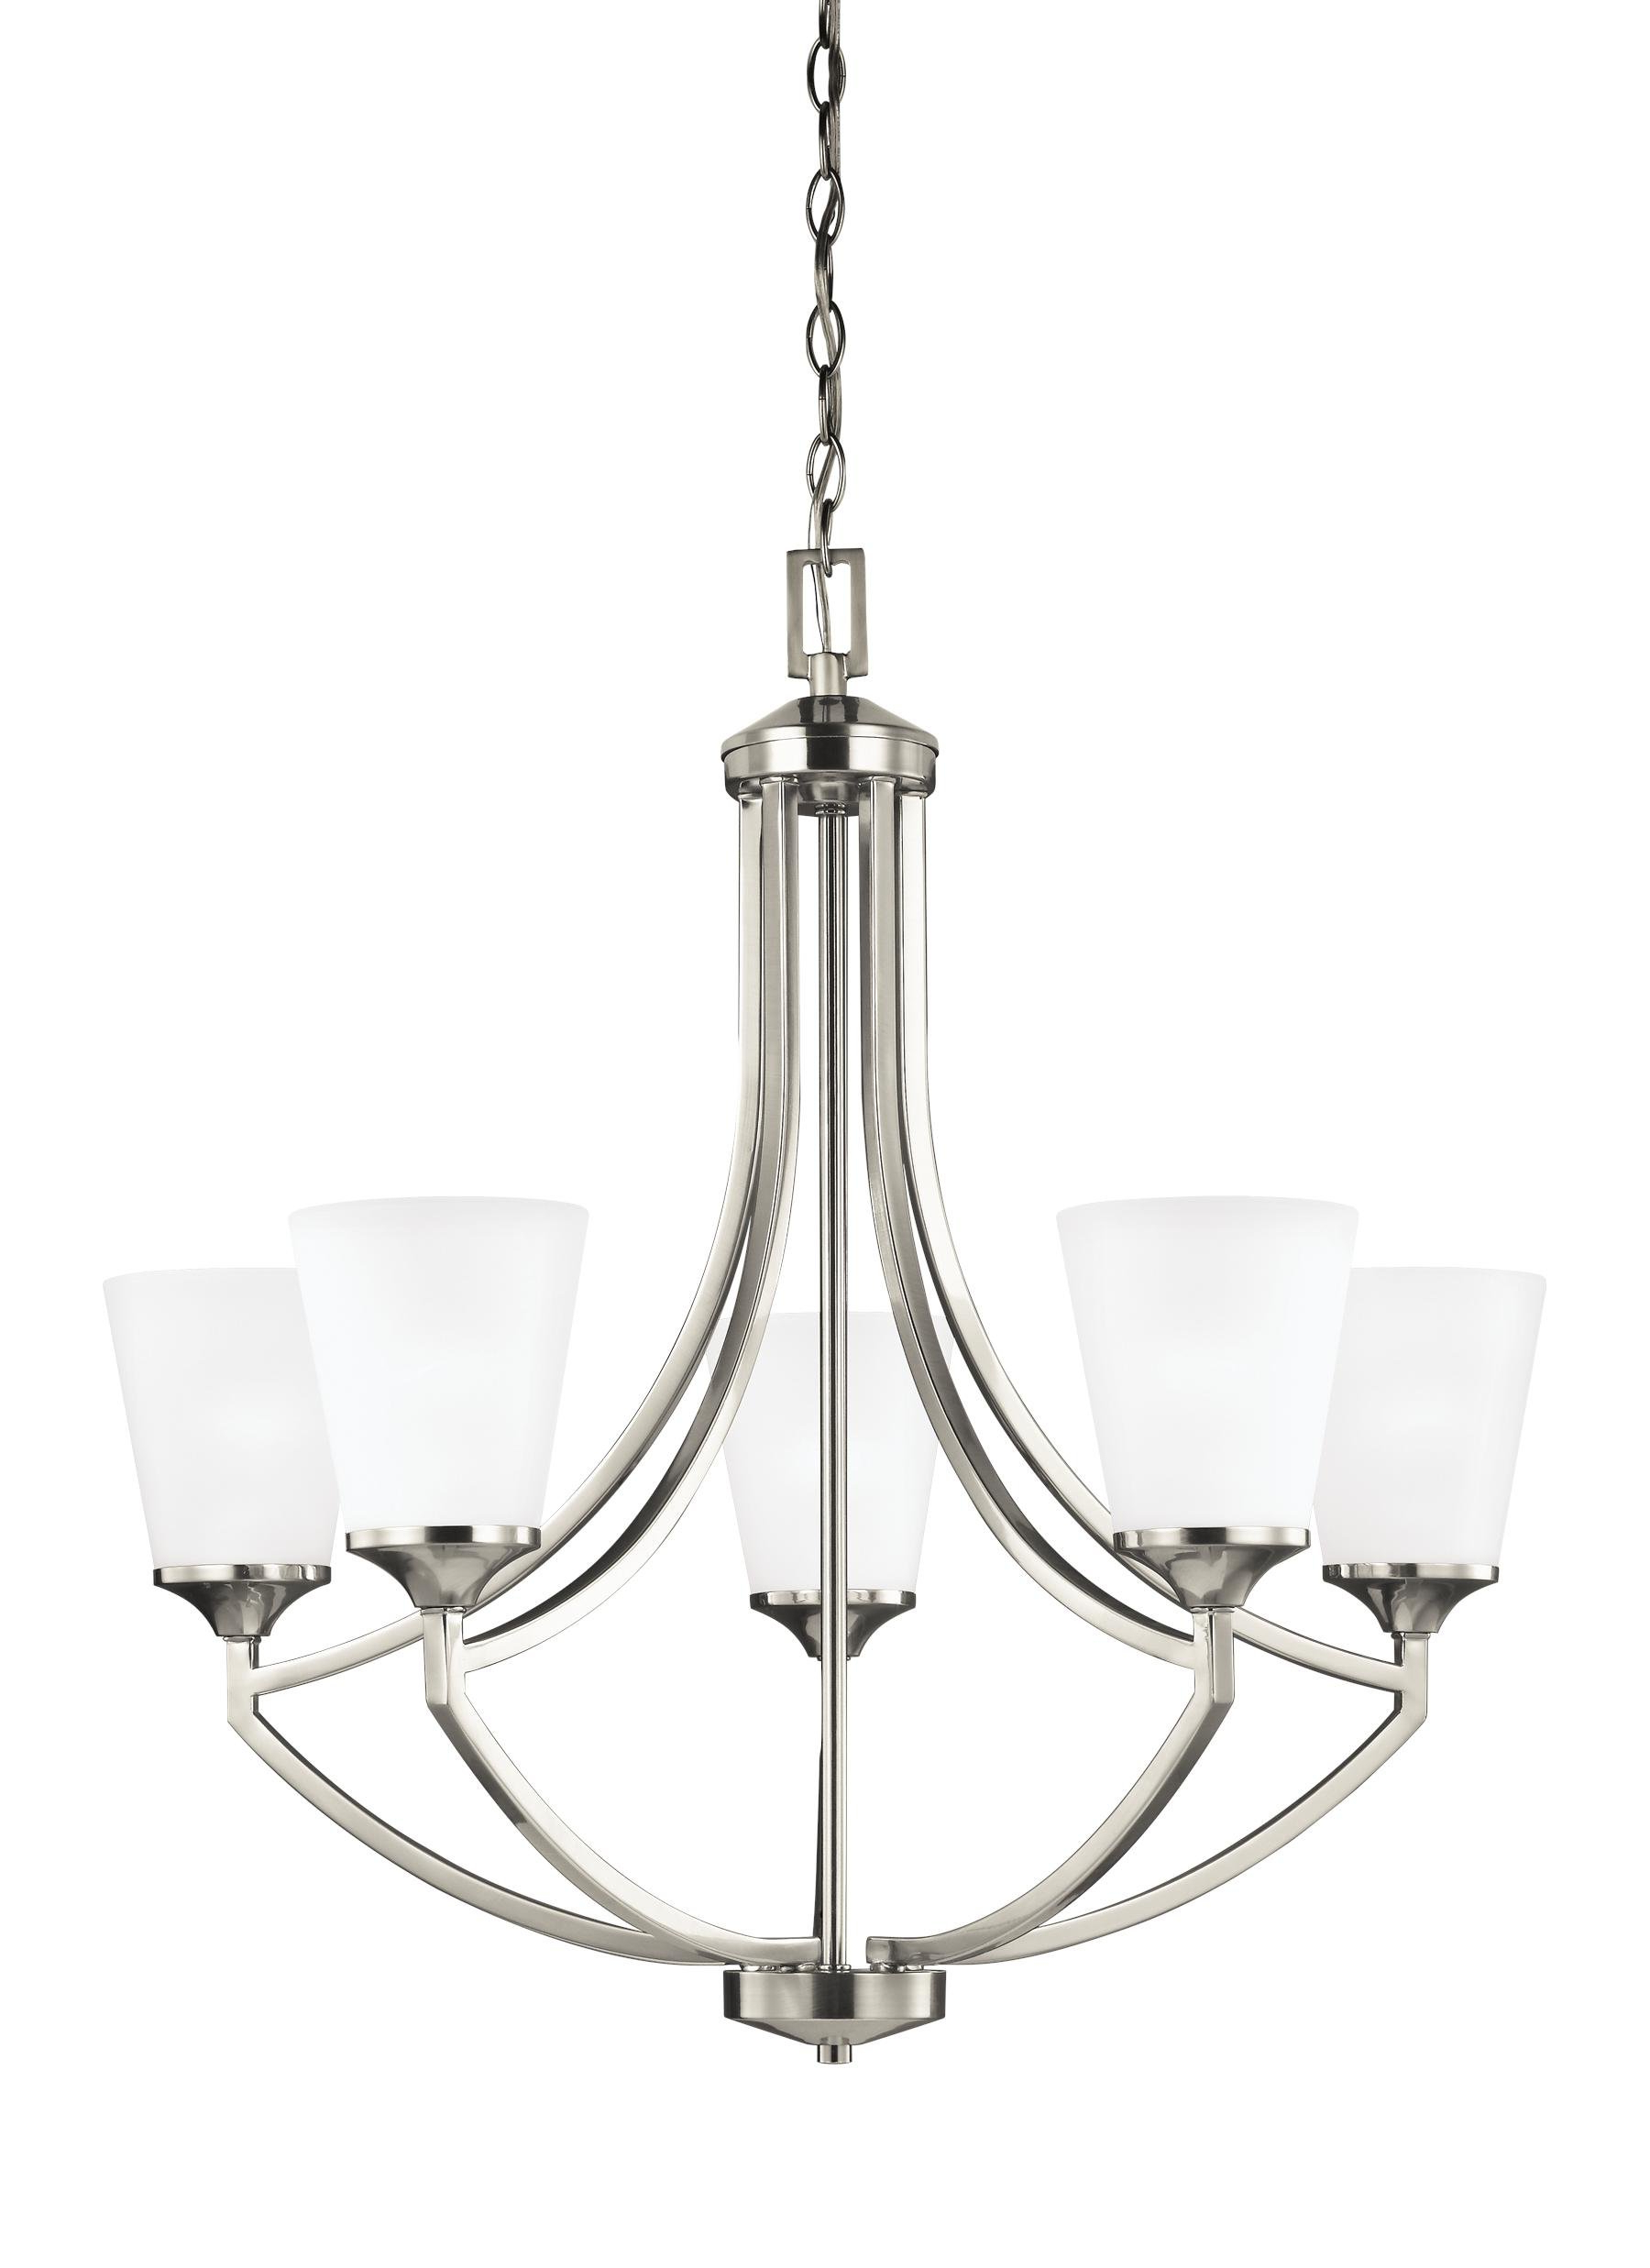 Best And Newest Crofoot 5 Light Shaded Chandeliers Pertaining To Elkton 5 Light Shaded Chandelier (View 4 of 20)